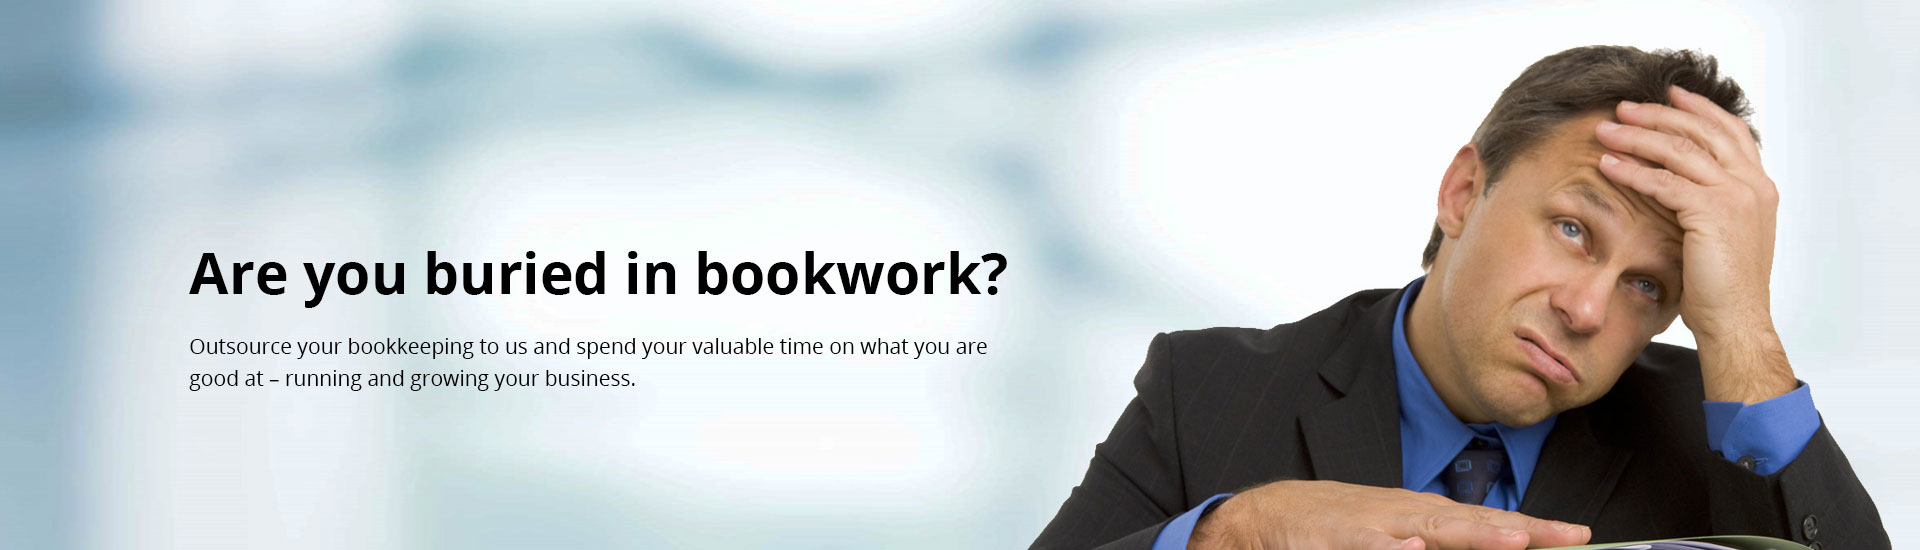 Are you buried in bookwork? Outsource your bookkeeping to us and spend your valuable time on what your are good at - running and growing your business